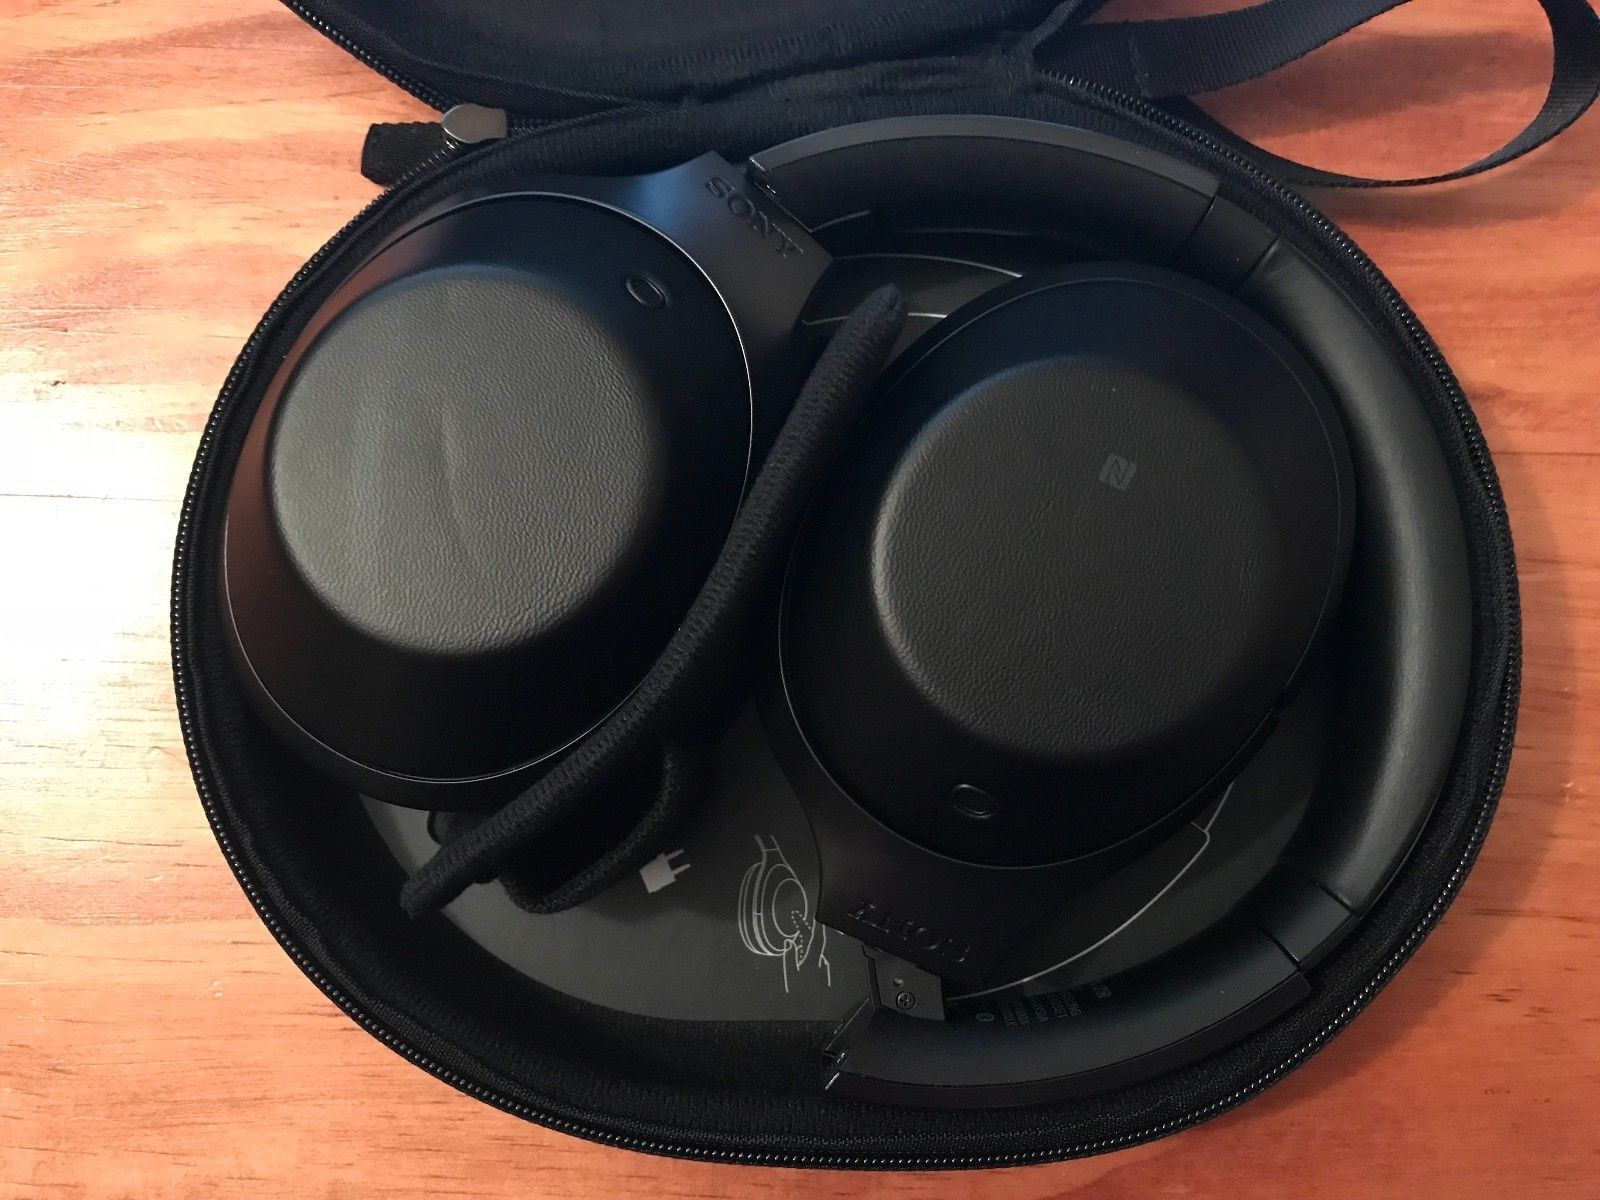 Sony Mdr 1000x Wireless Noise Canceling Bluetooth Headphones Black Noice Cancelling Headphone Ad Mdr1000x B Http